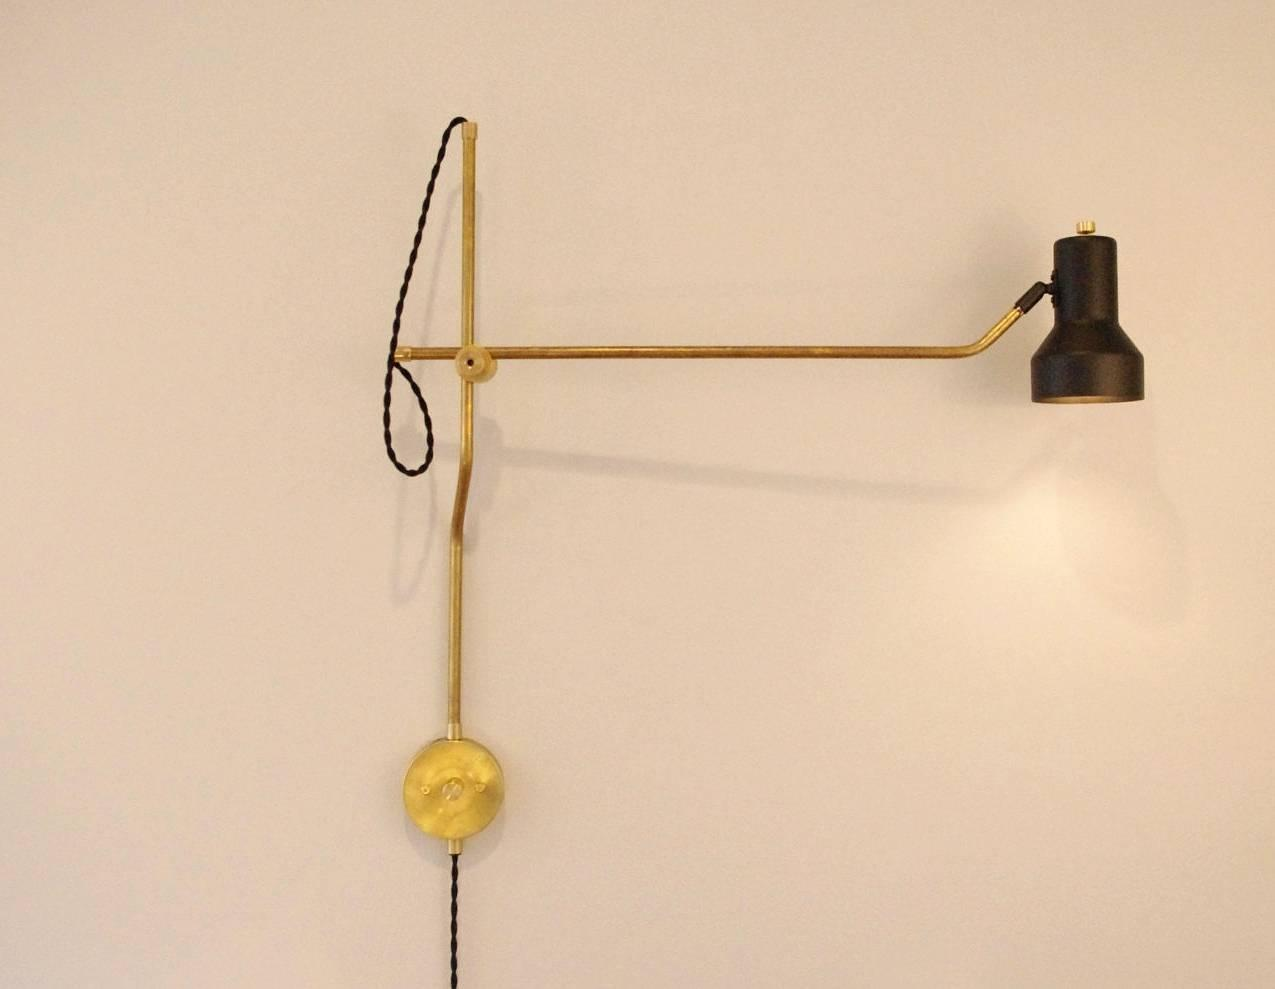 Wall Mounted Lamps With Swing Arms : Set of Six Industrial Brass Wall Mount Swing Arm Lamps For Sale at 1stdibs